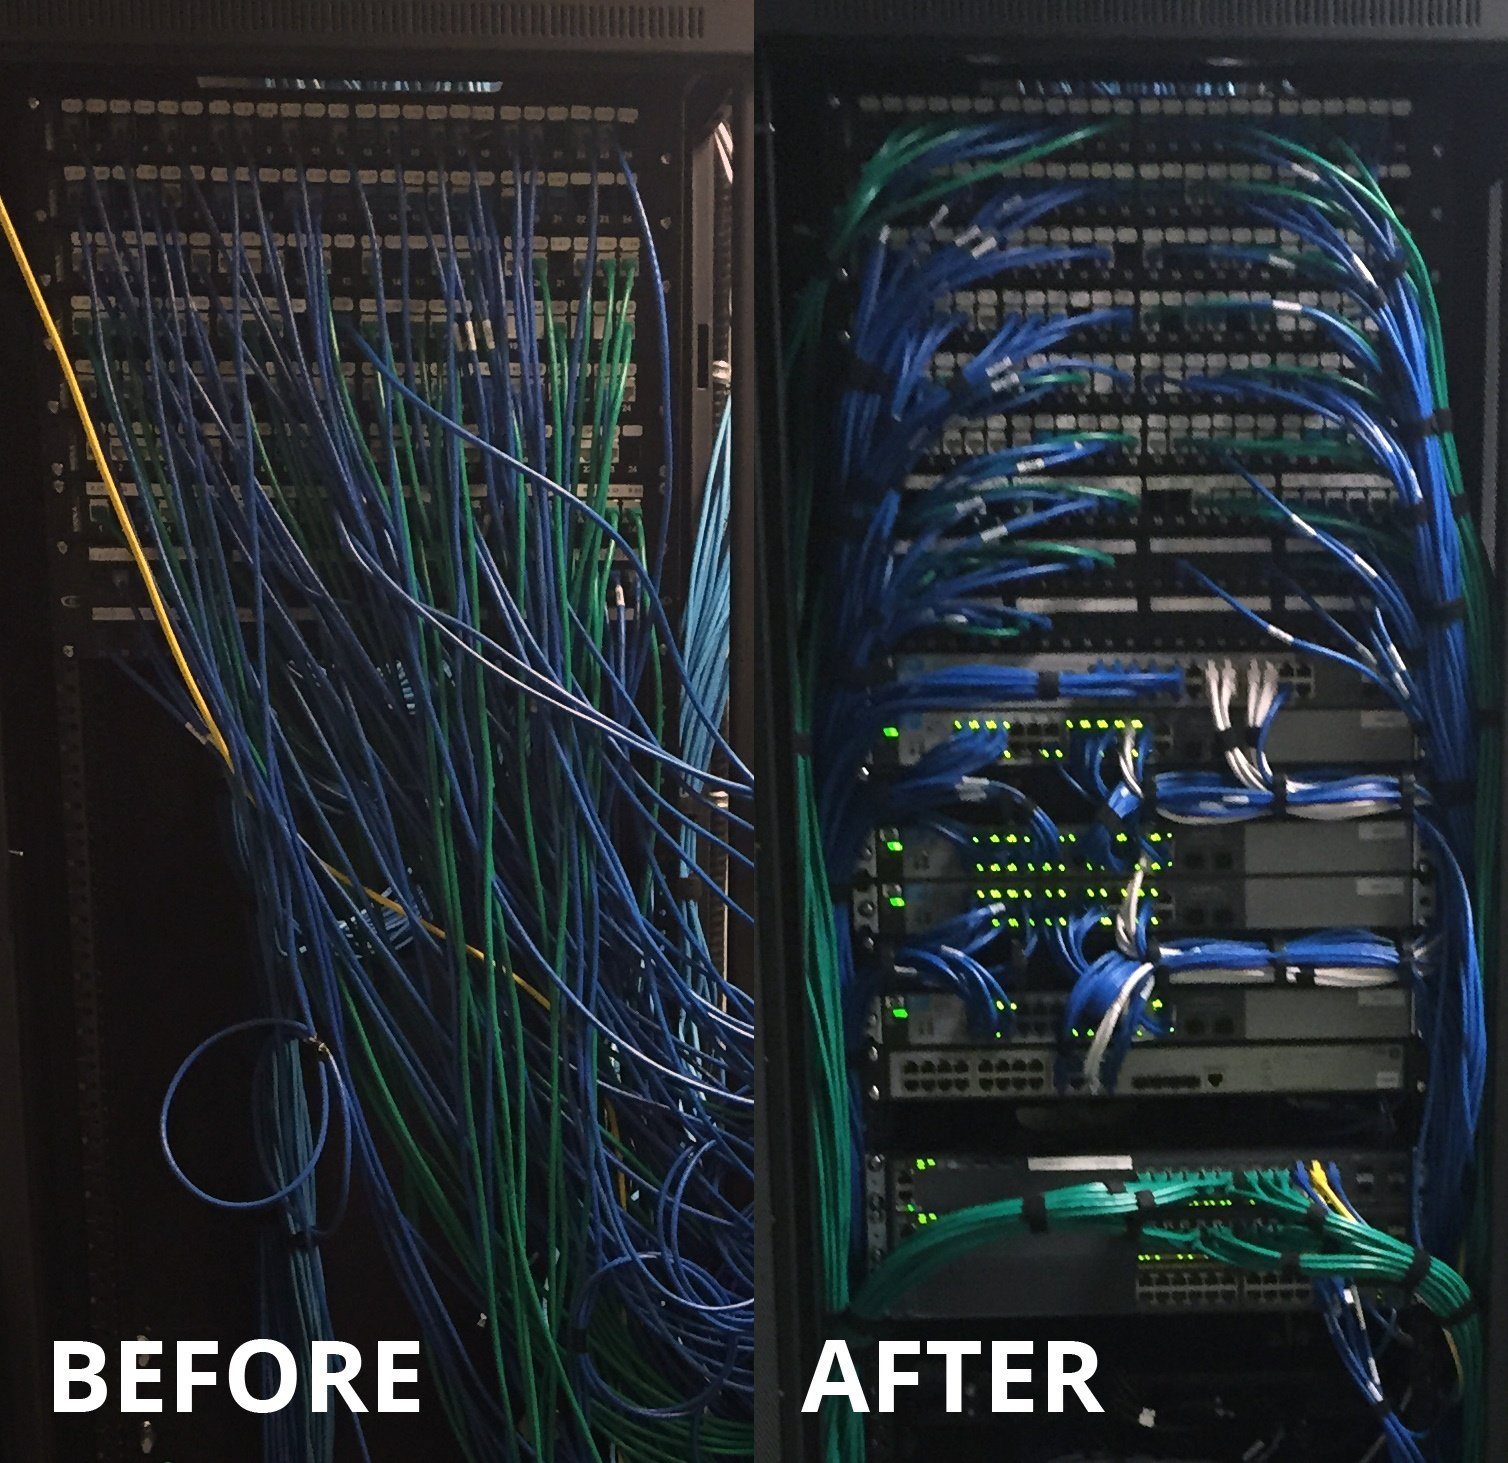 Winnipeg Network Cabling Before and After